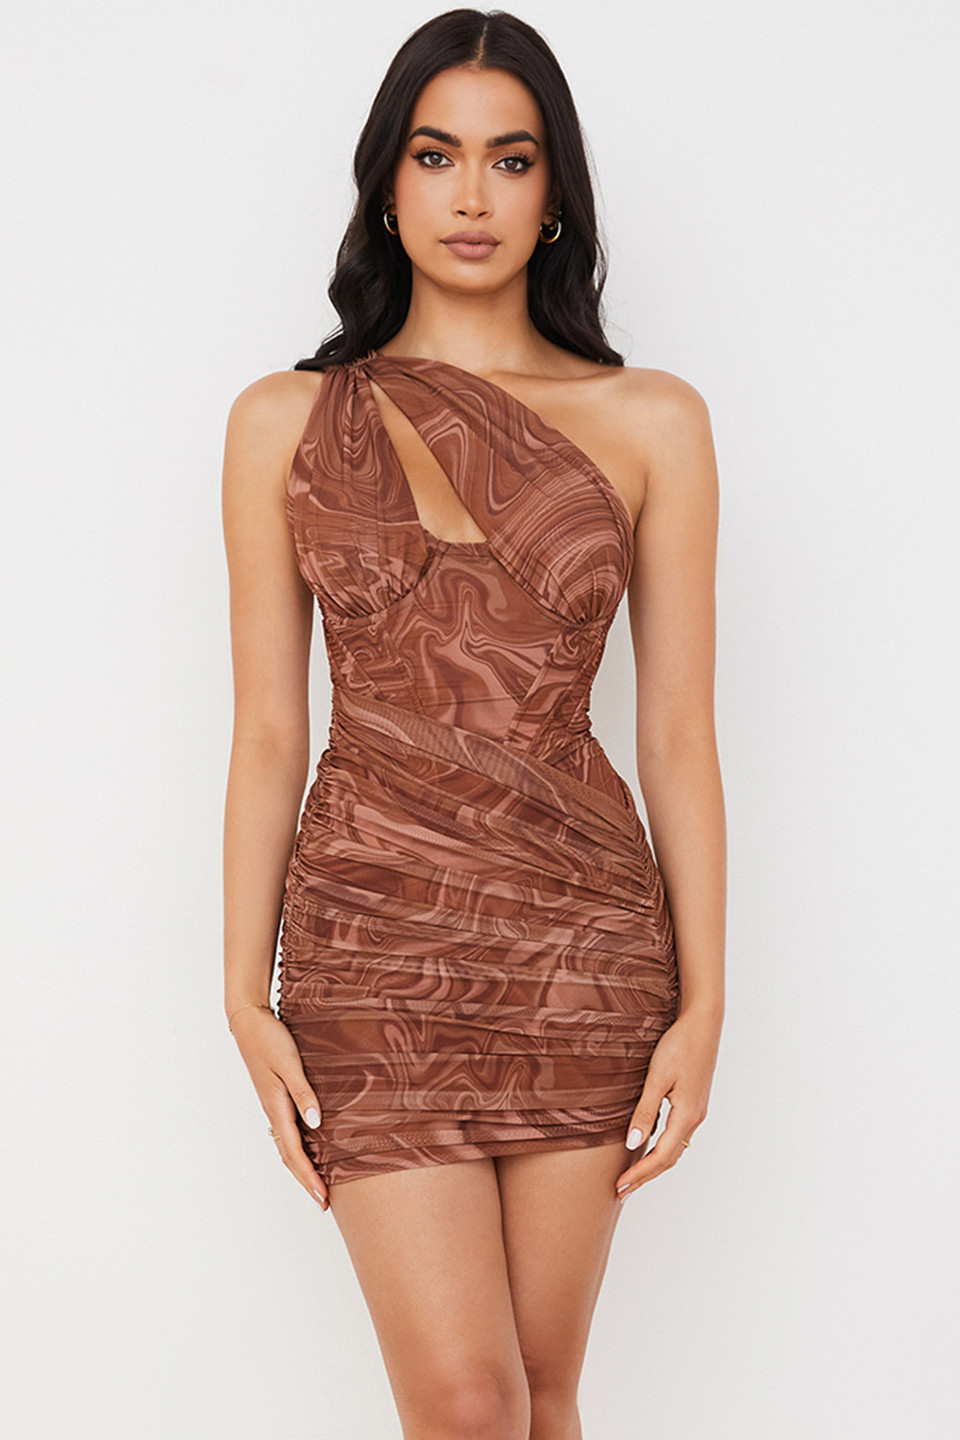 Clementine Swirl Print Cut Out Mini Dress